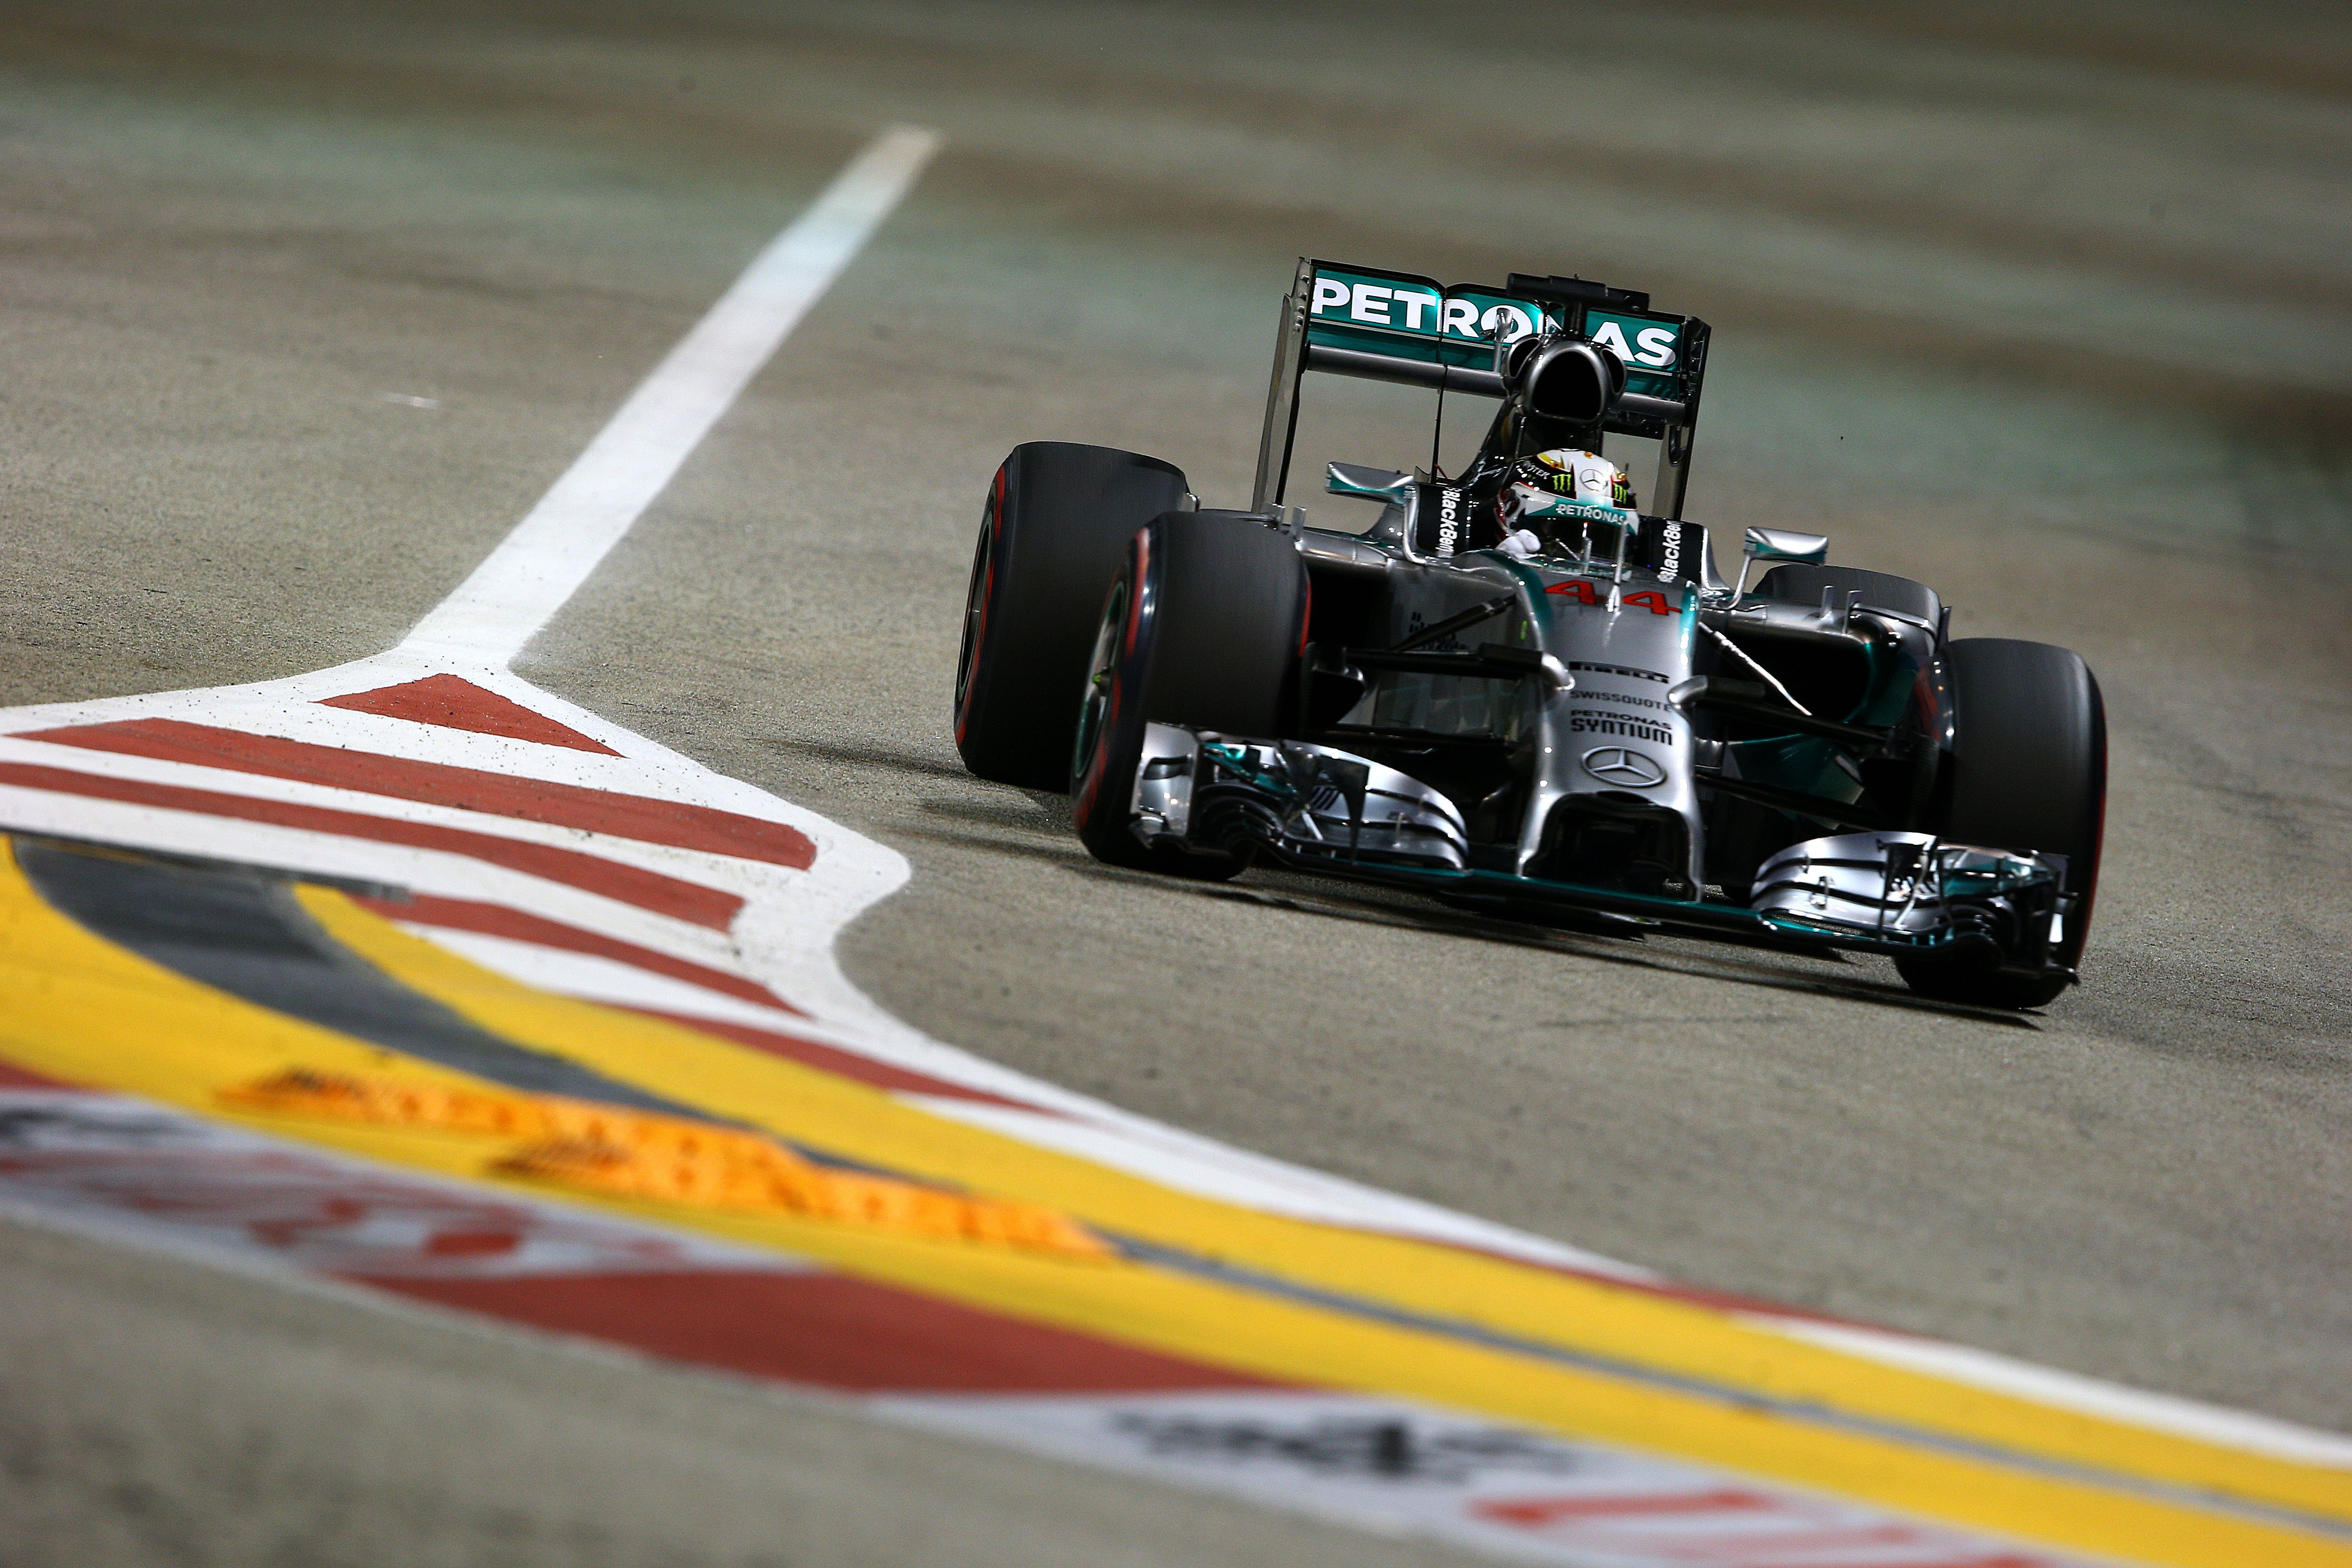 F1 Grand Prix of Singapore - Qualifying